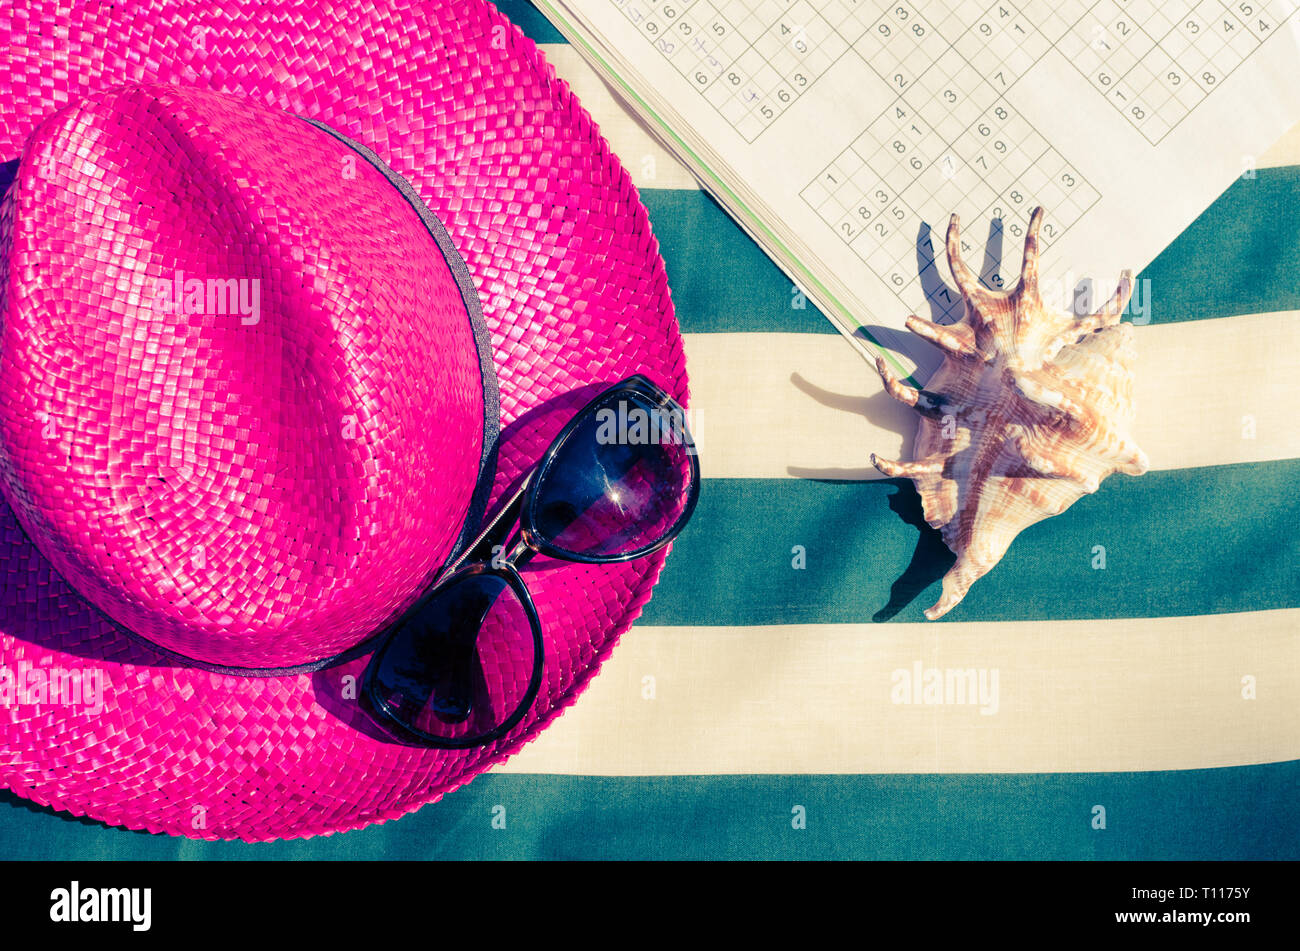 d02eb2ec Colorful holiday background with pink straw beach hat with sunglasses and  sudoku on striped sunbed.